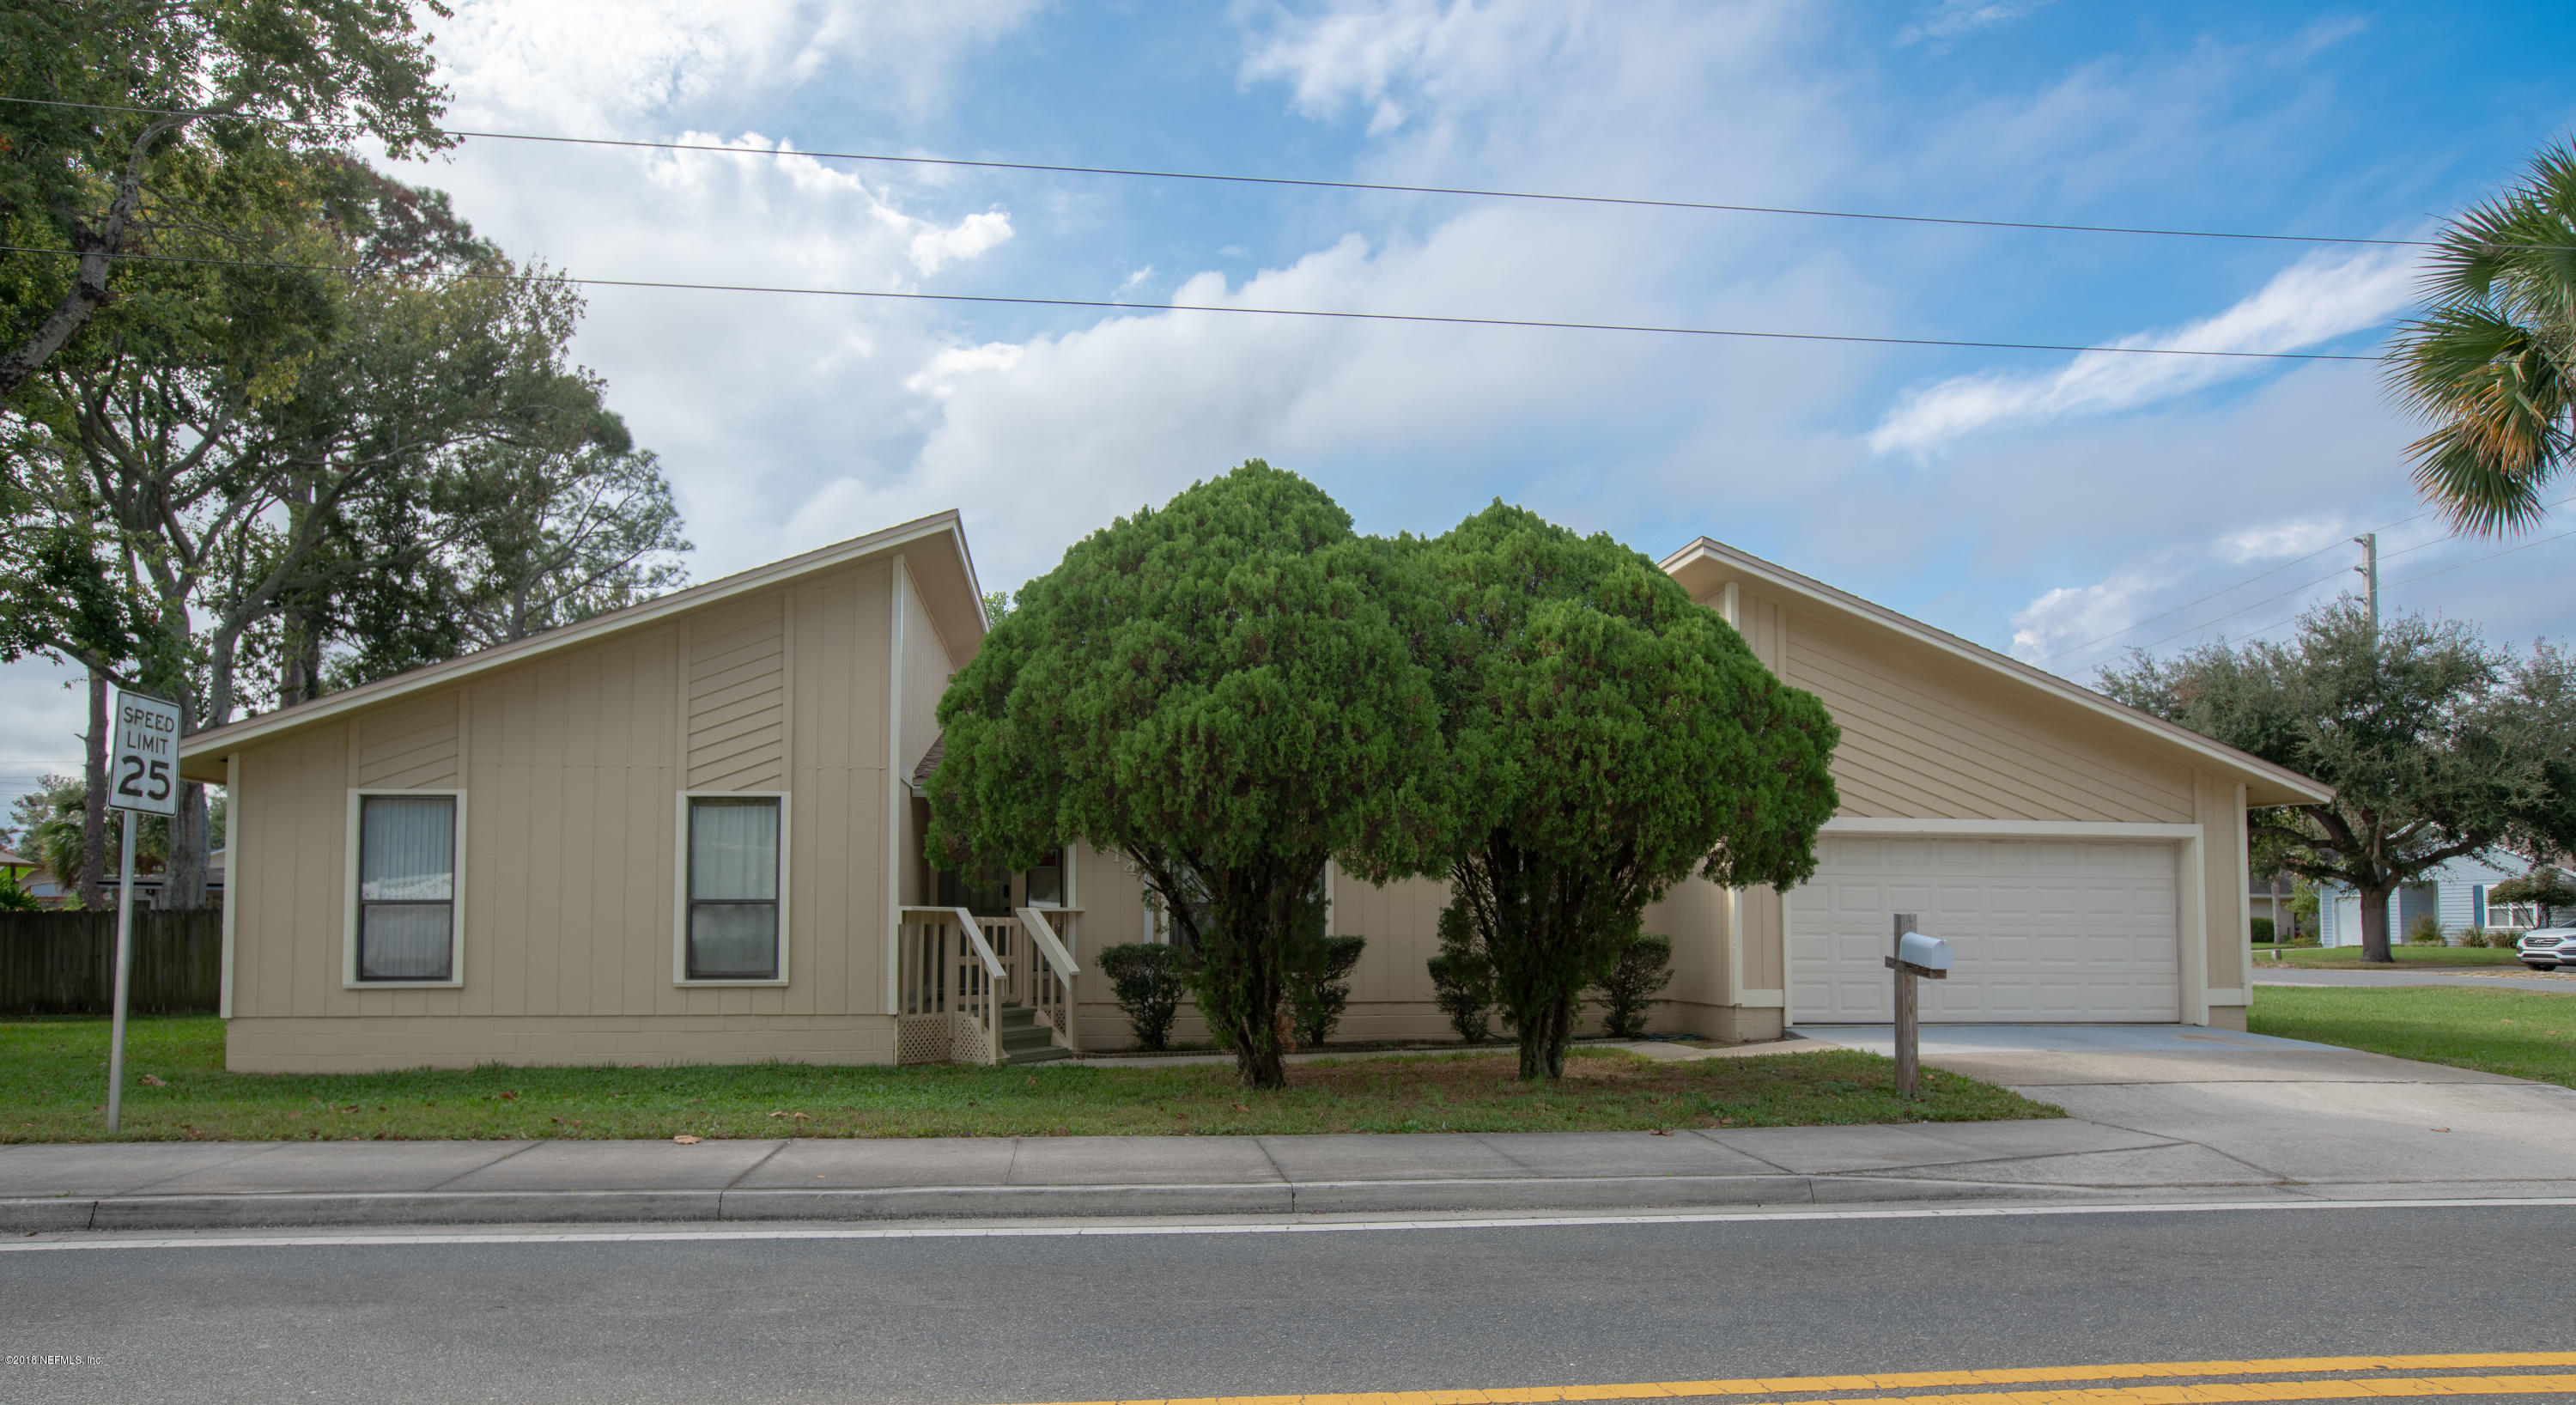 1614 SOUTH BEACH, JACKSONVILLE BEACH, FLORIDA 32250, 3 Bedrooms Bedrooms, ,2 BathroomsBathrooms,Residential - single family,For sale,SOUTH BEACH,966377